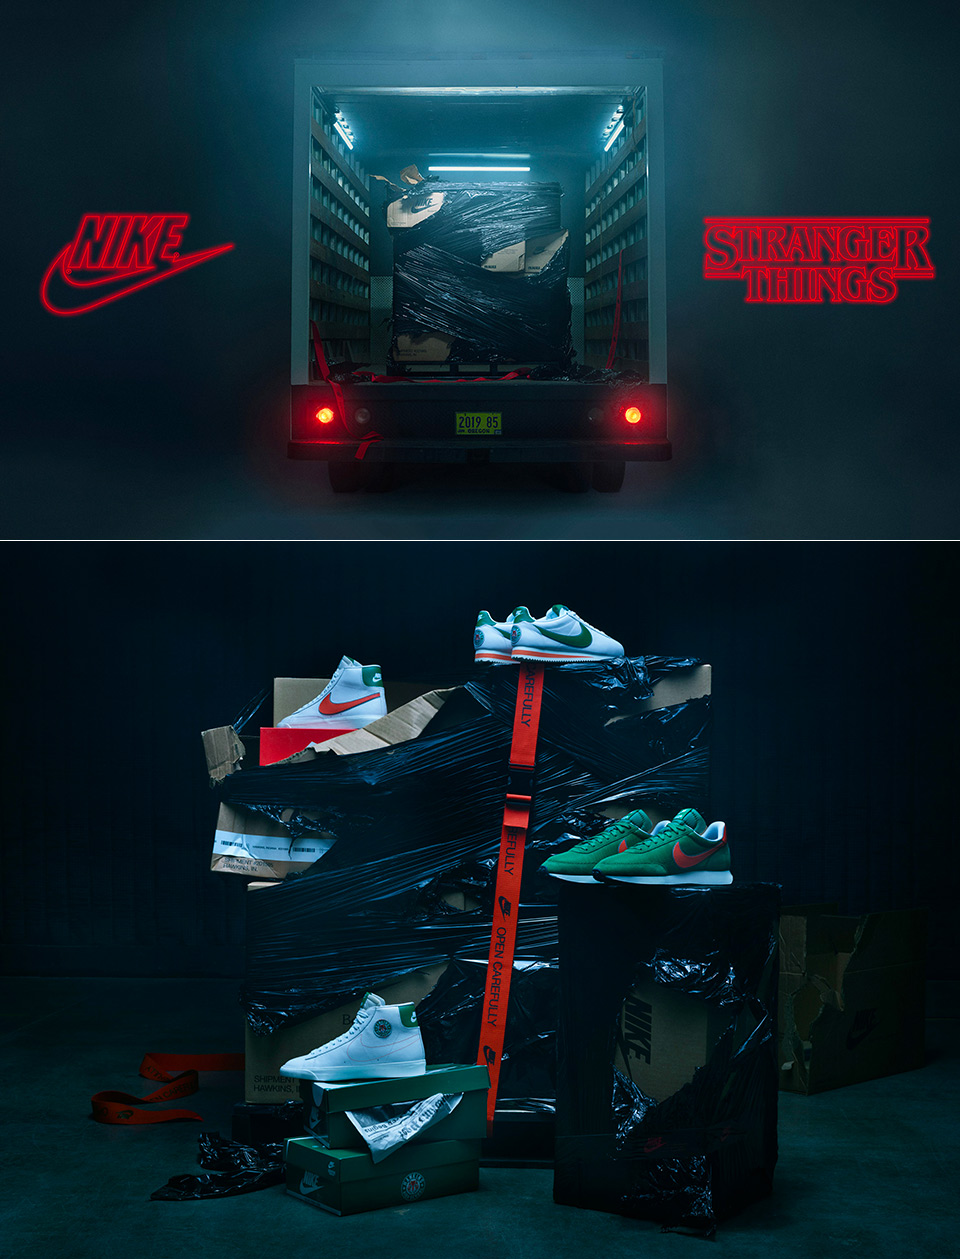 Nike Stranger Things